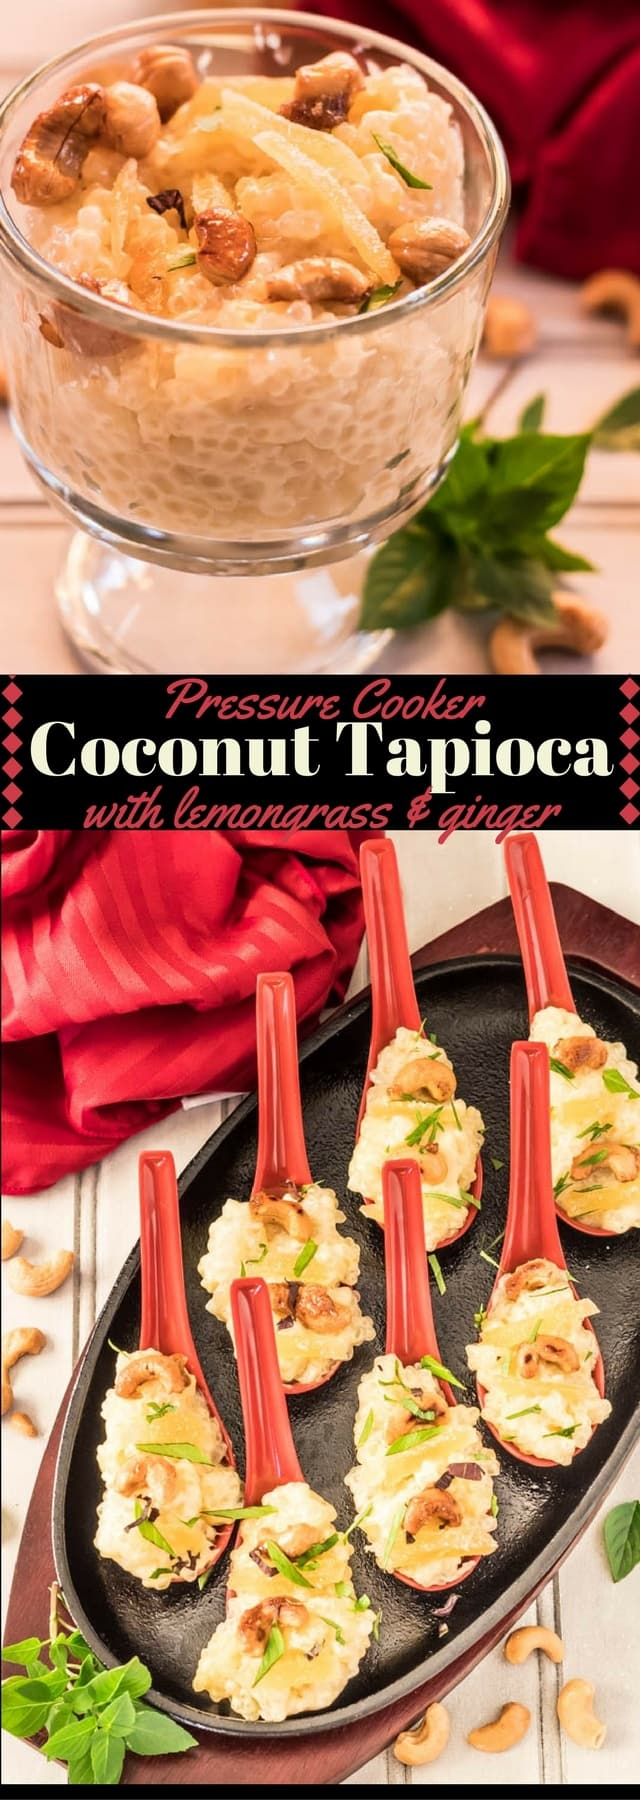 photo collage of pressure cooker coconut lemongrass ginger tapioca